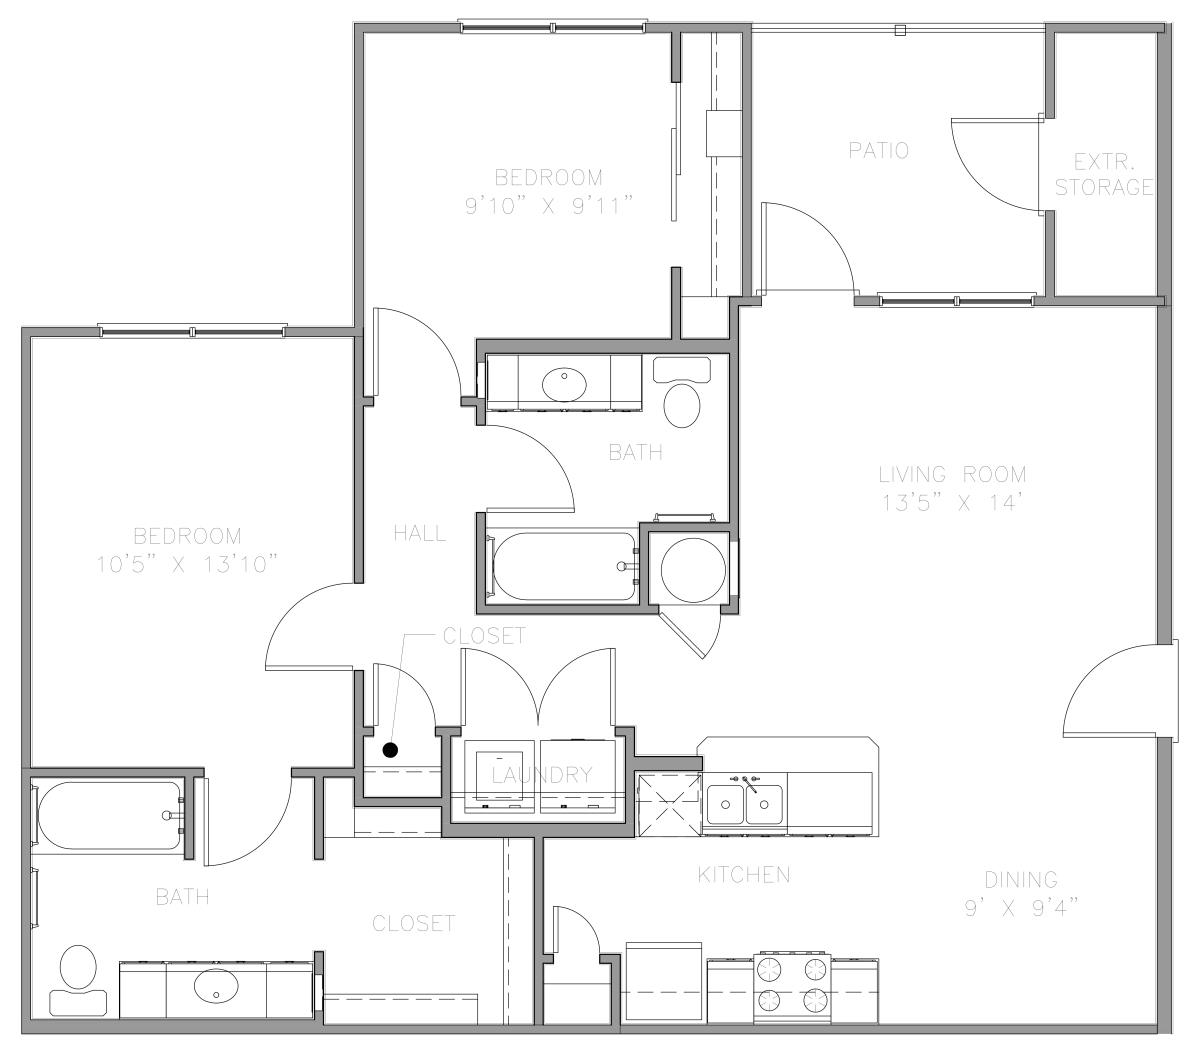 995 sq. ft. 60% floor plan